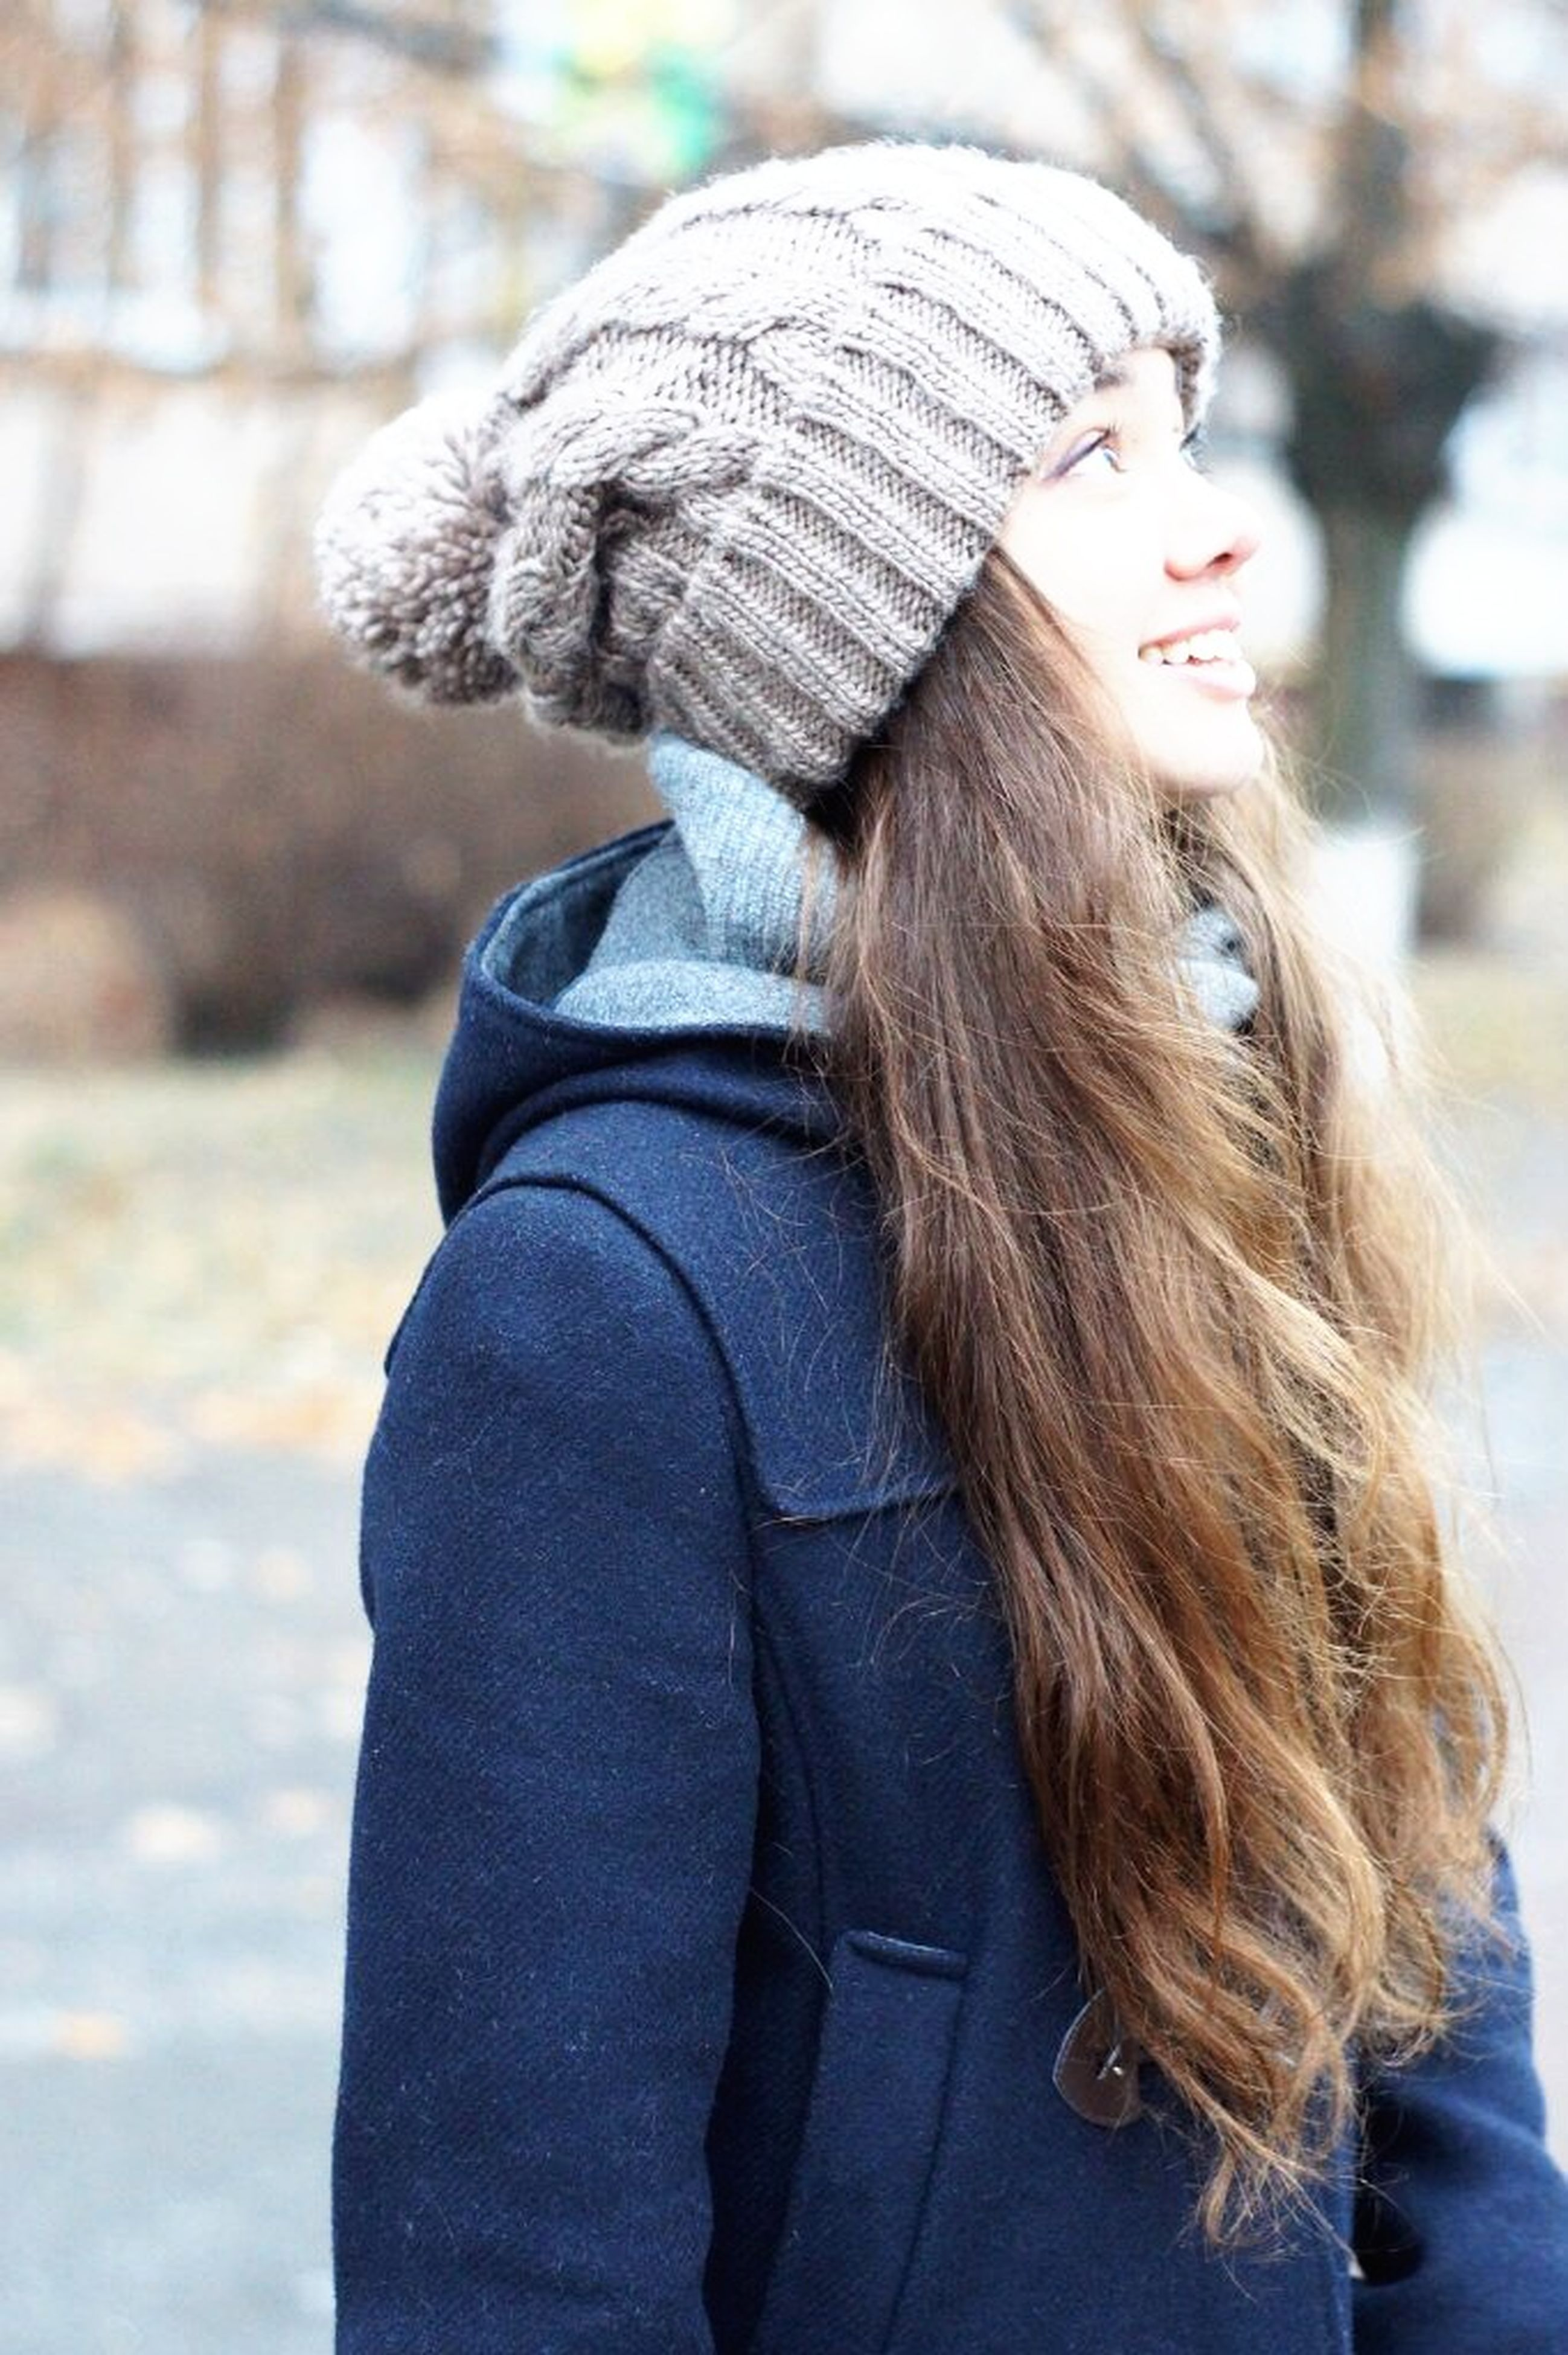 focus on foreground, rear view, lifestyles, long hair, casual clothing, leisure activity, headshot, warm clothing, waist up, brown hair, person, young adult, day, jacket, side view, outdoors, human hair, young women